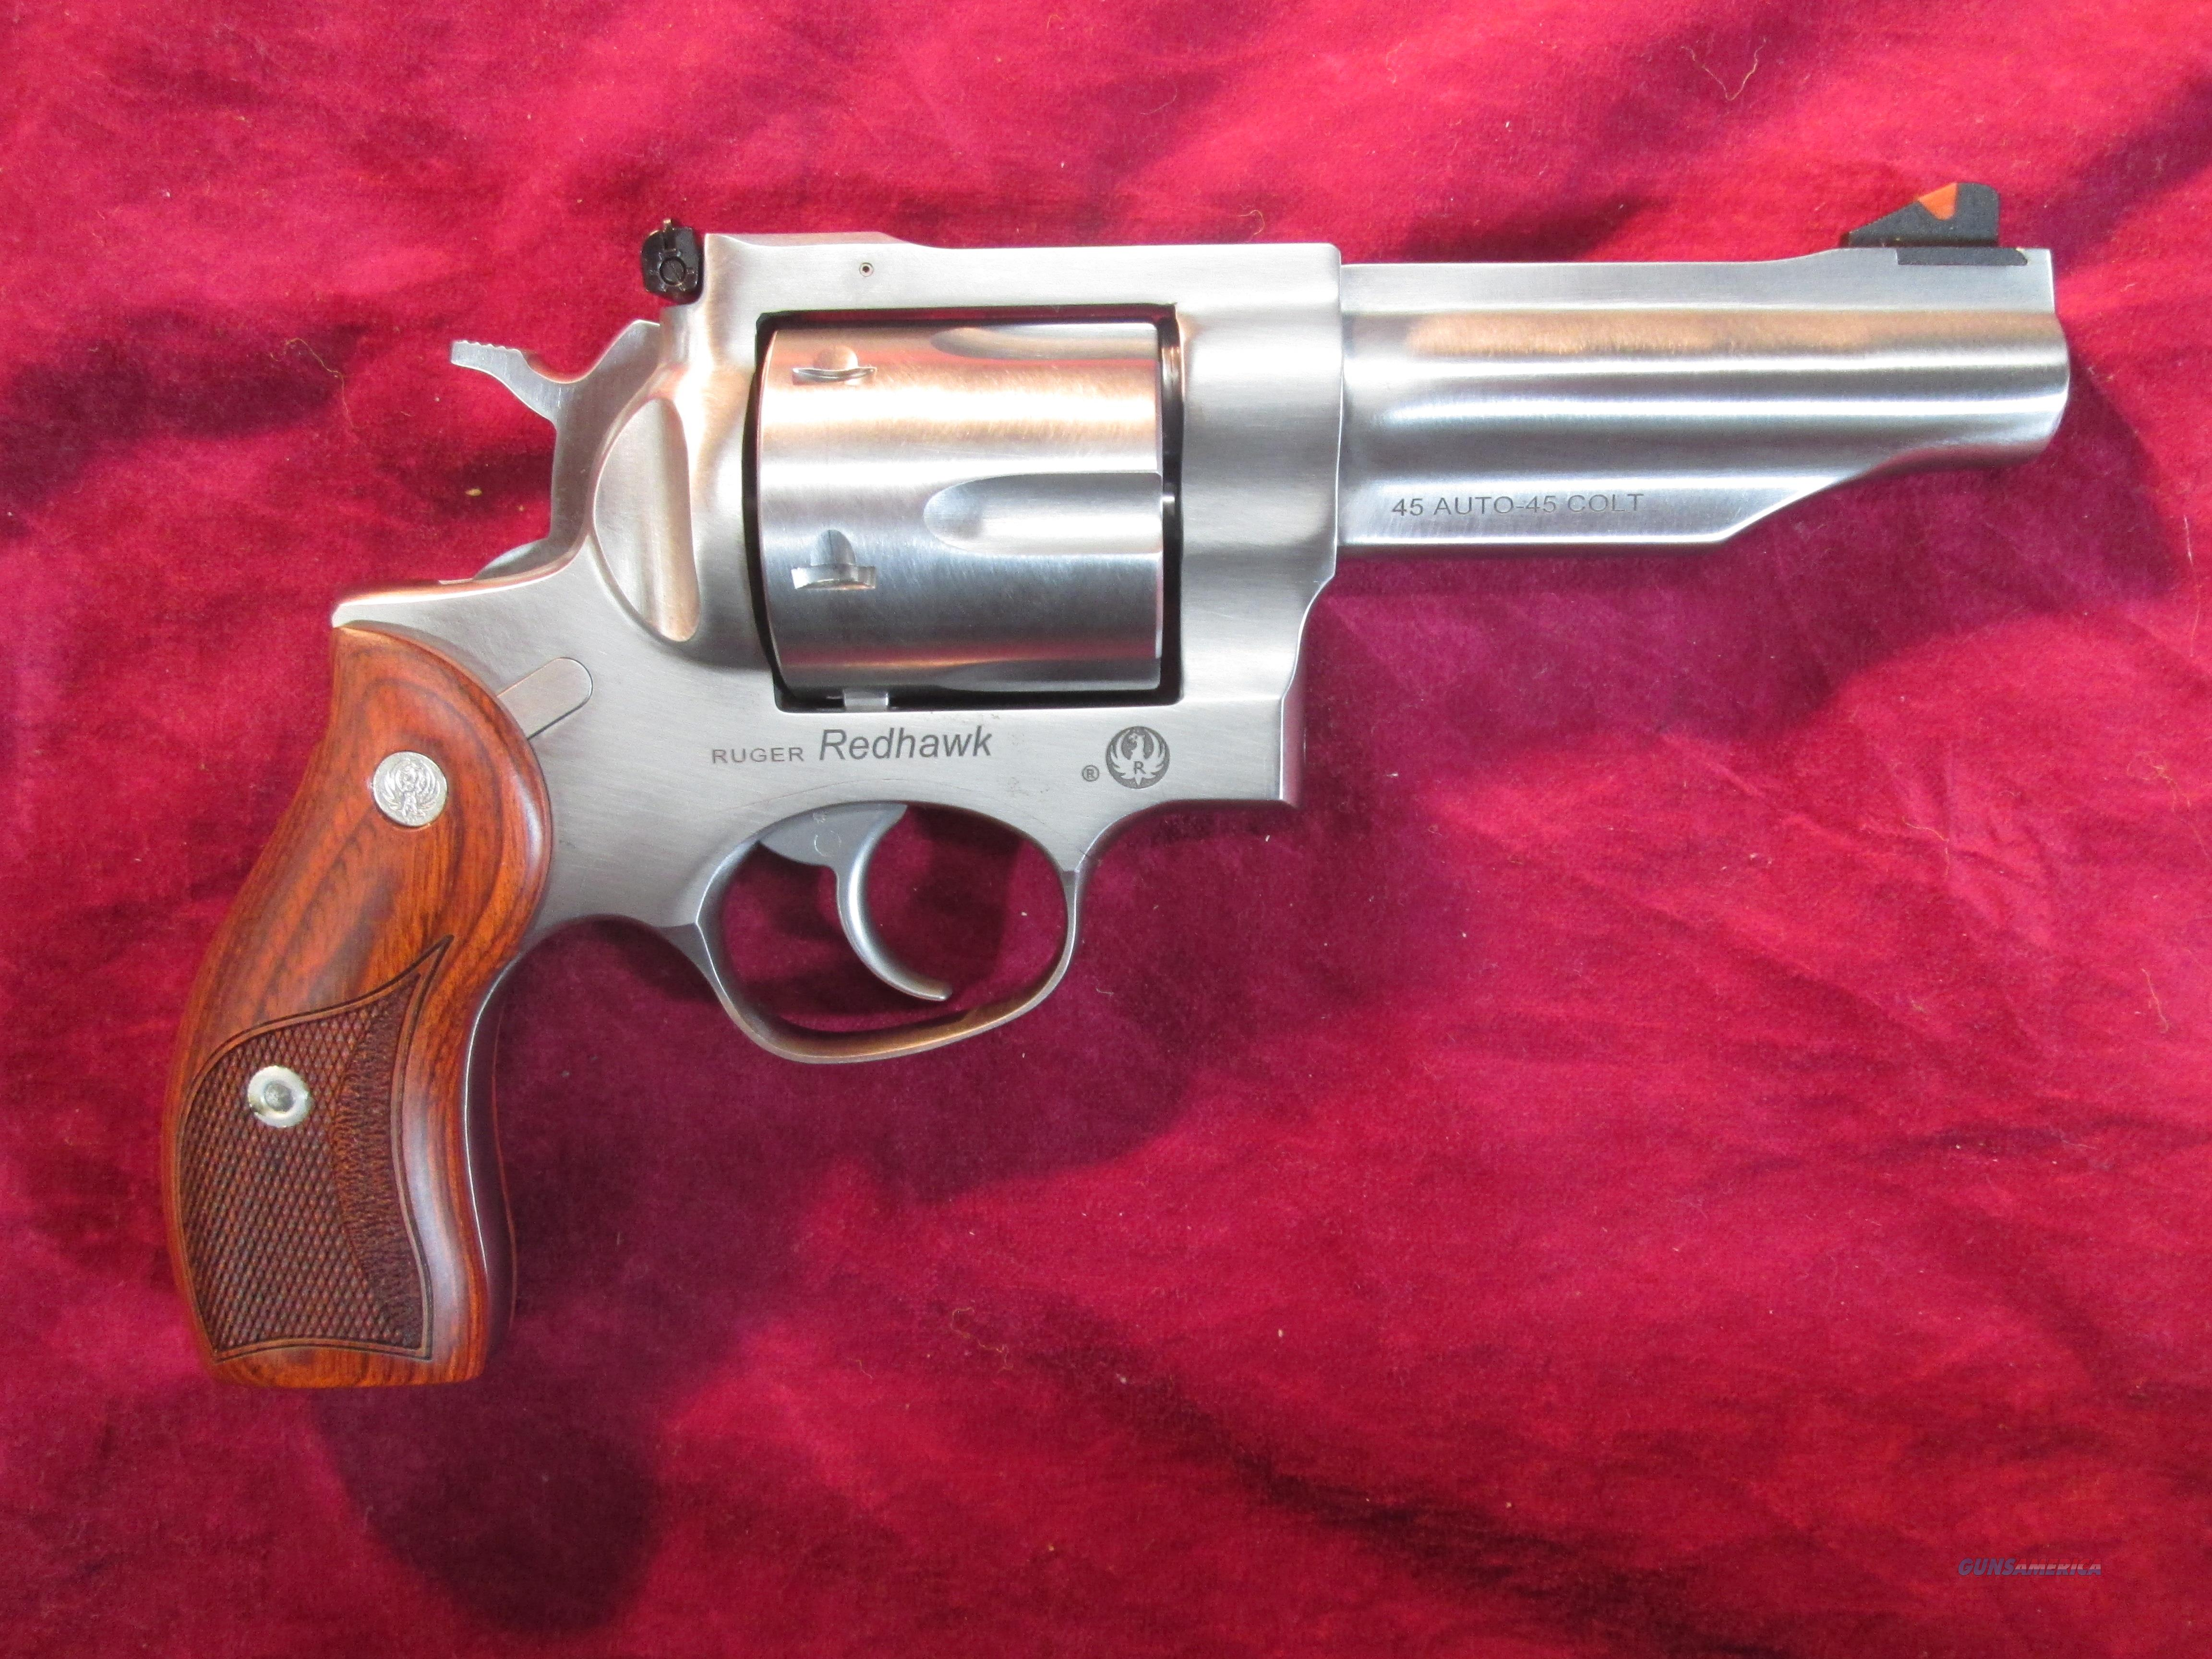 "RUGER STAINLESS REDHAWK 45COLT/ 45 ACP 4.2"" NEW (KRH45A)  Guns > Pistols > Ruger Double Action Revolver > Redhawk Type"